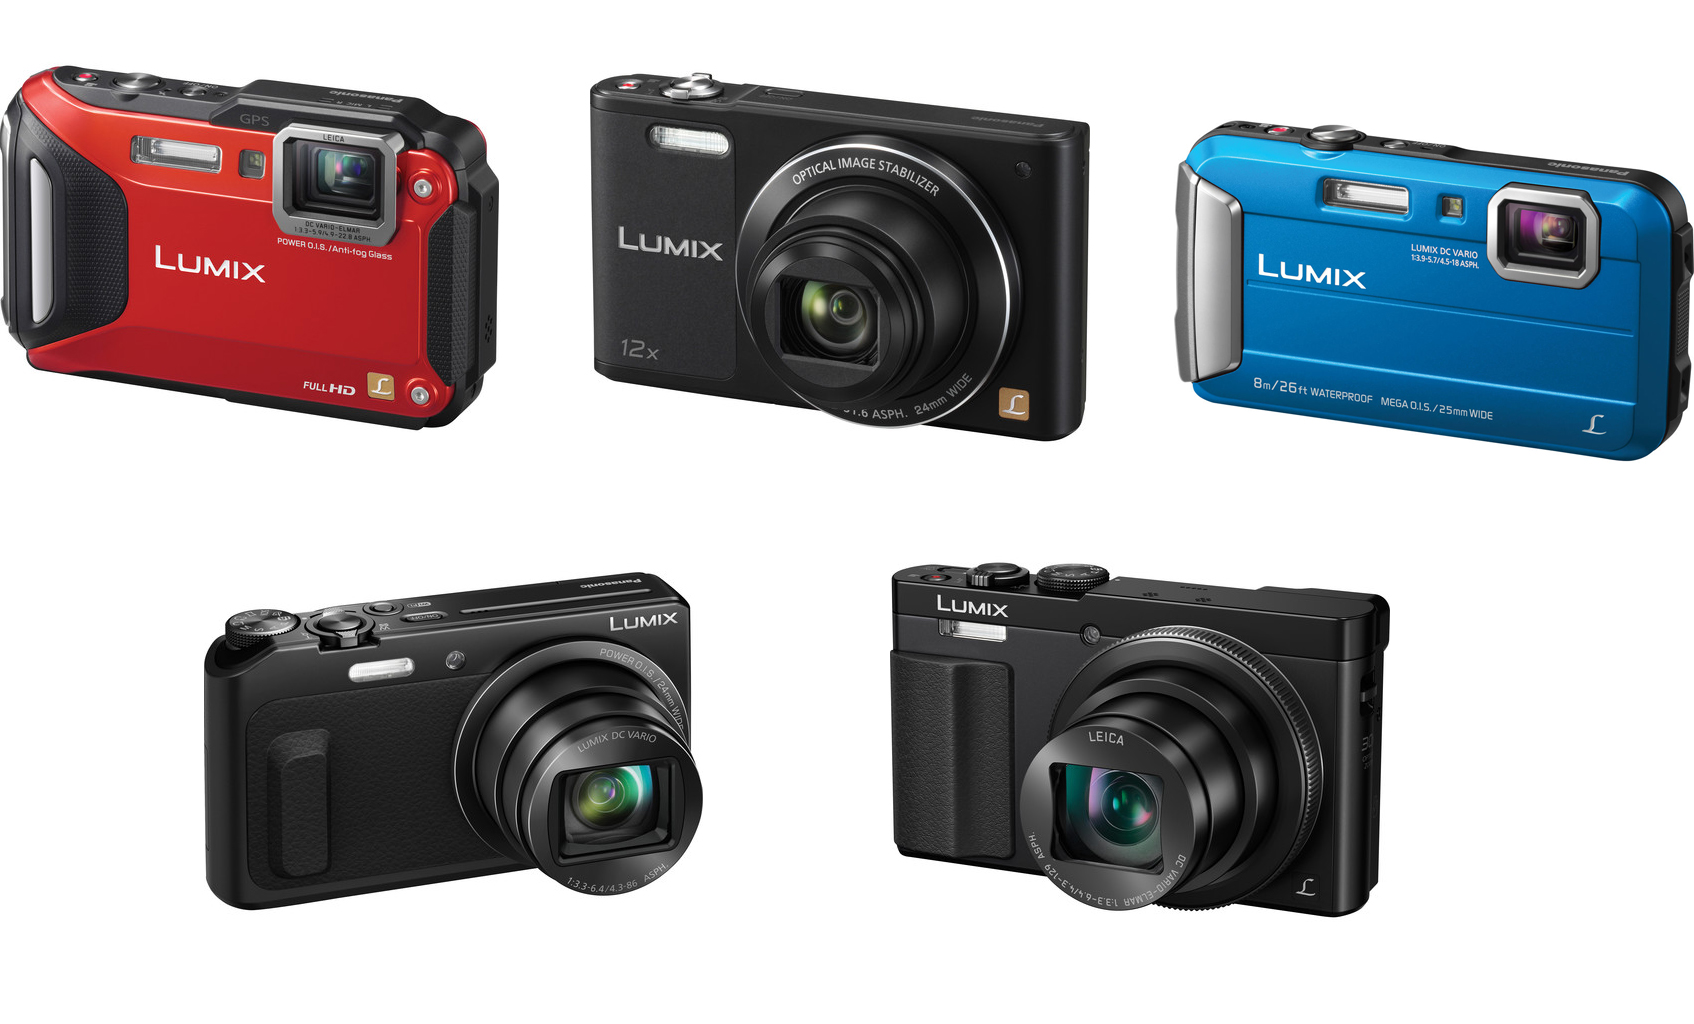 New panasonic lumix compact cameras announced at ces for New camera 2015